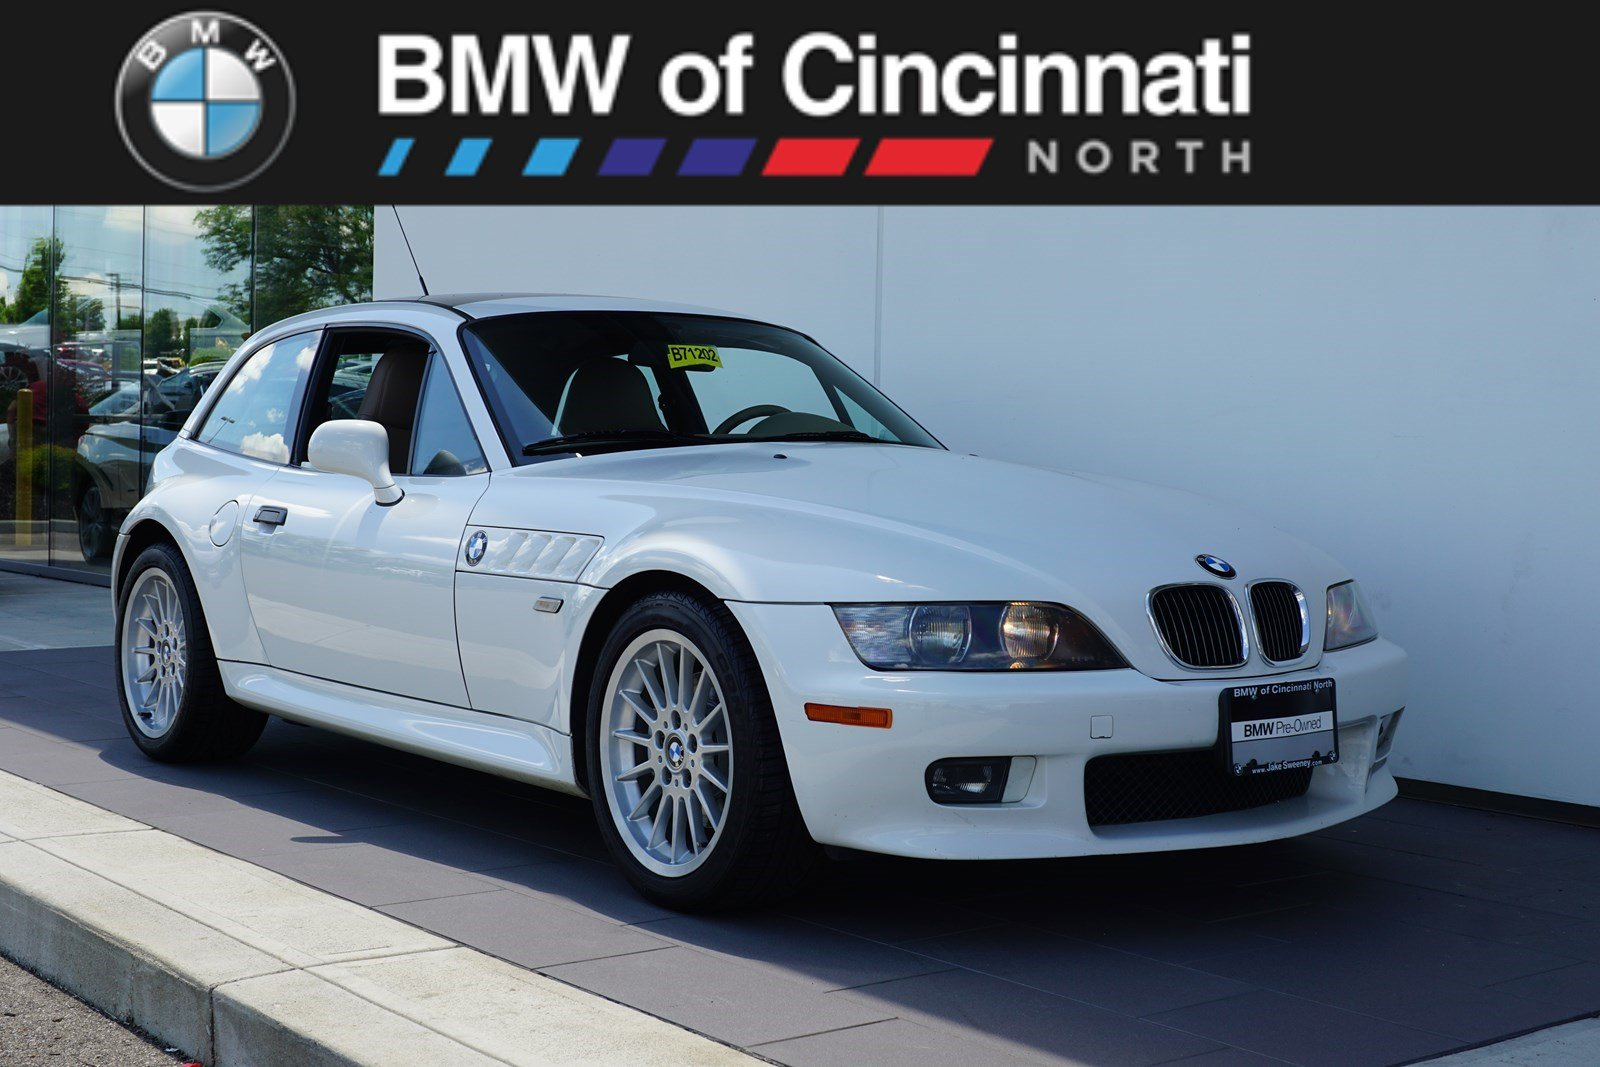 2001 BMW Z3 Coupe in Alpine White 3 over Extended Beige